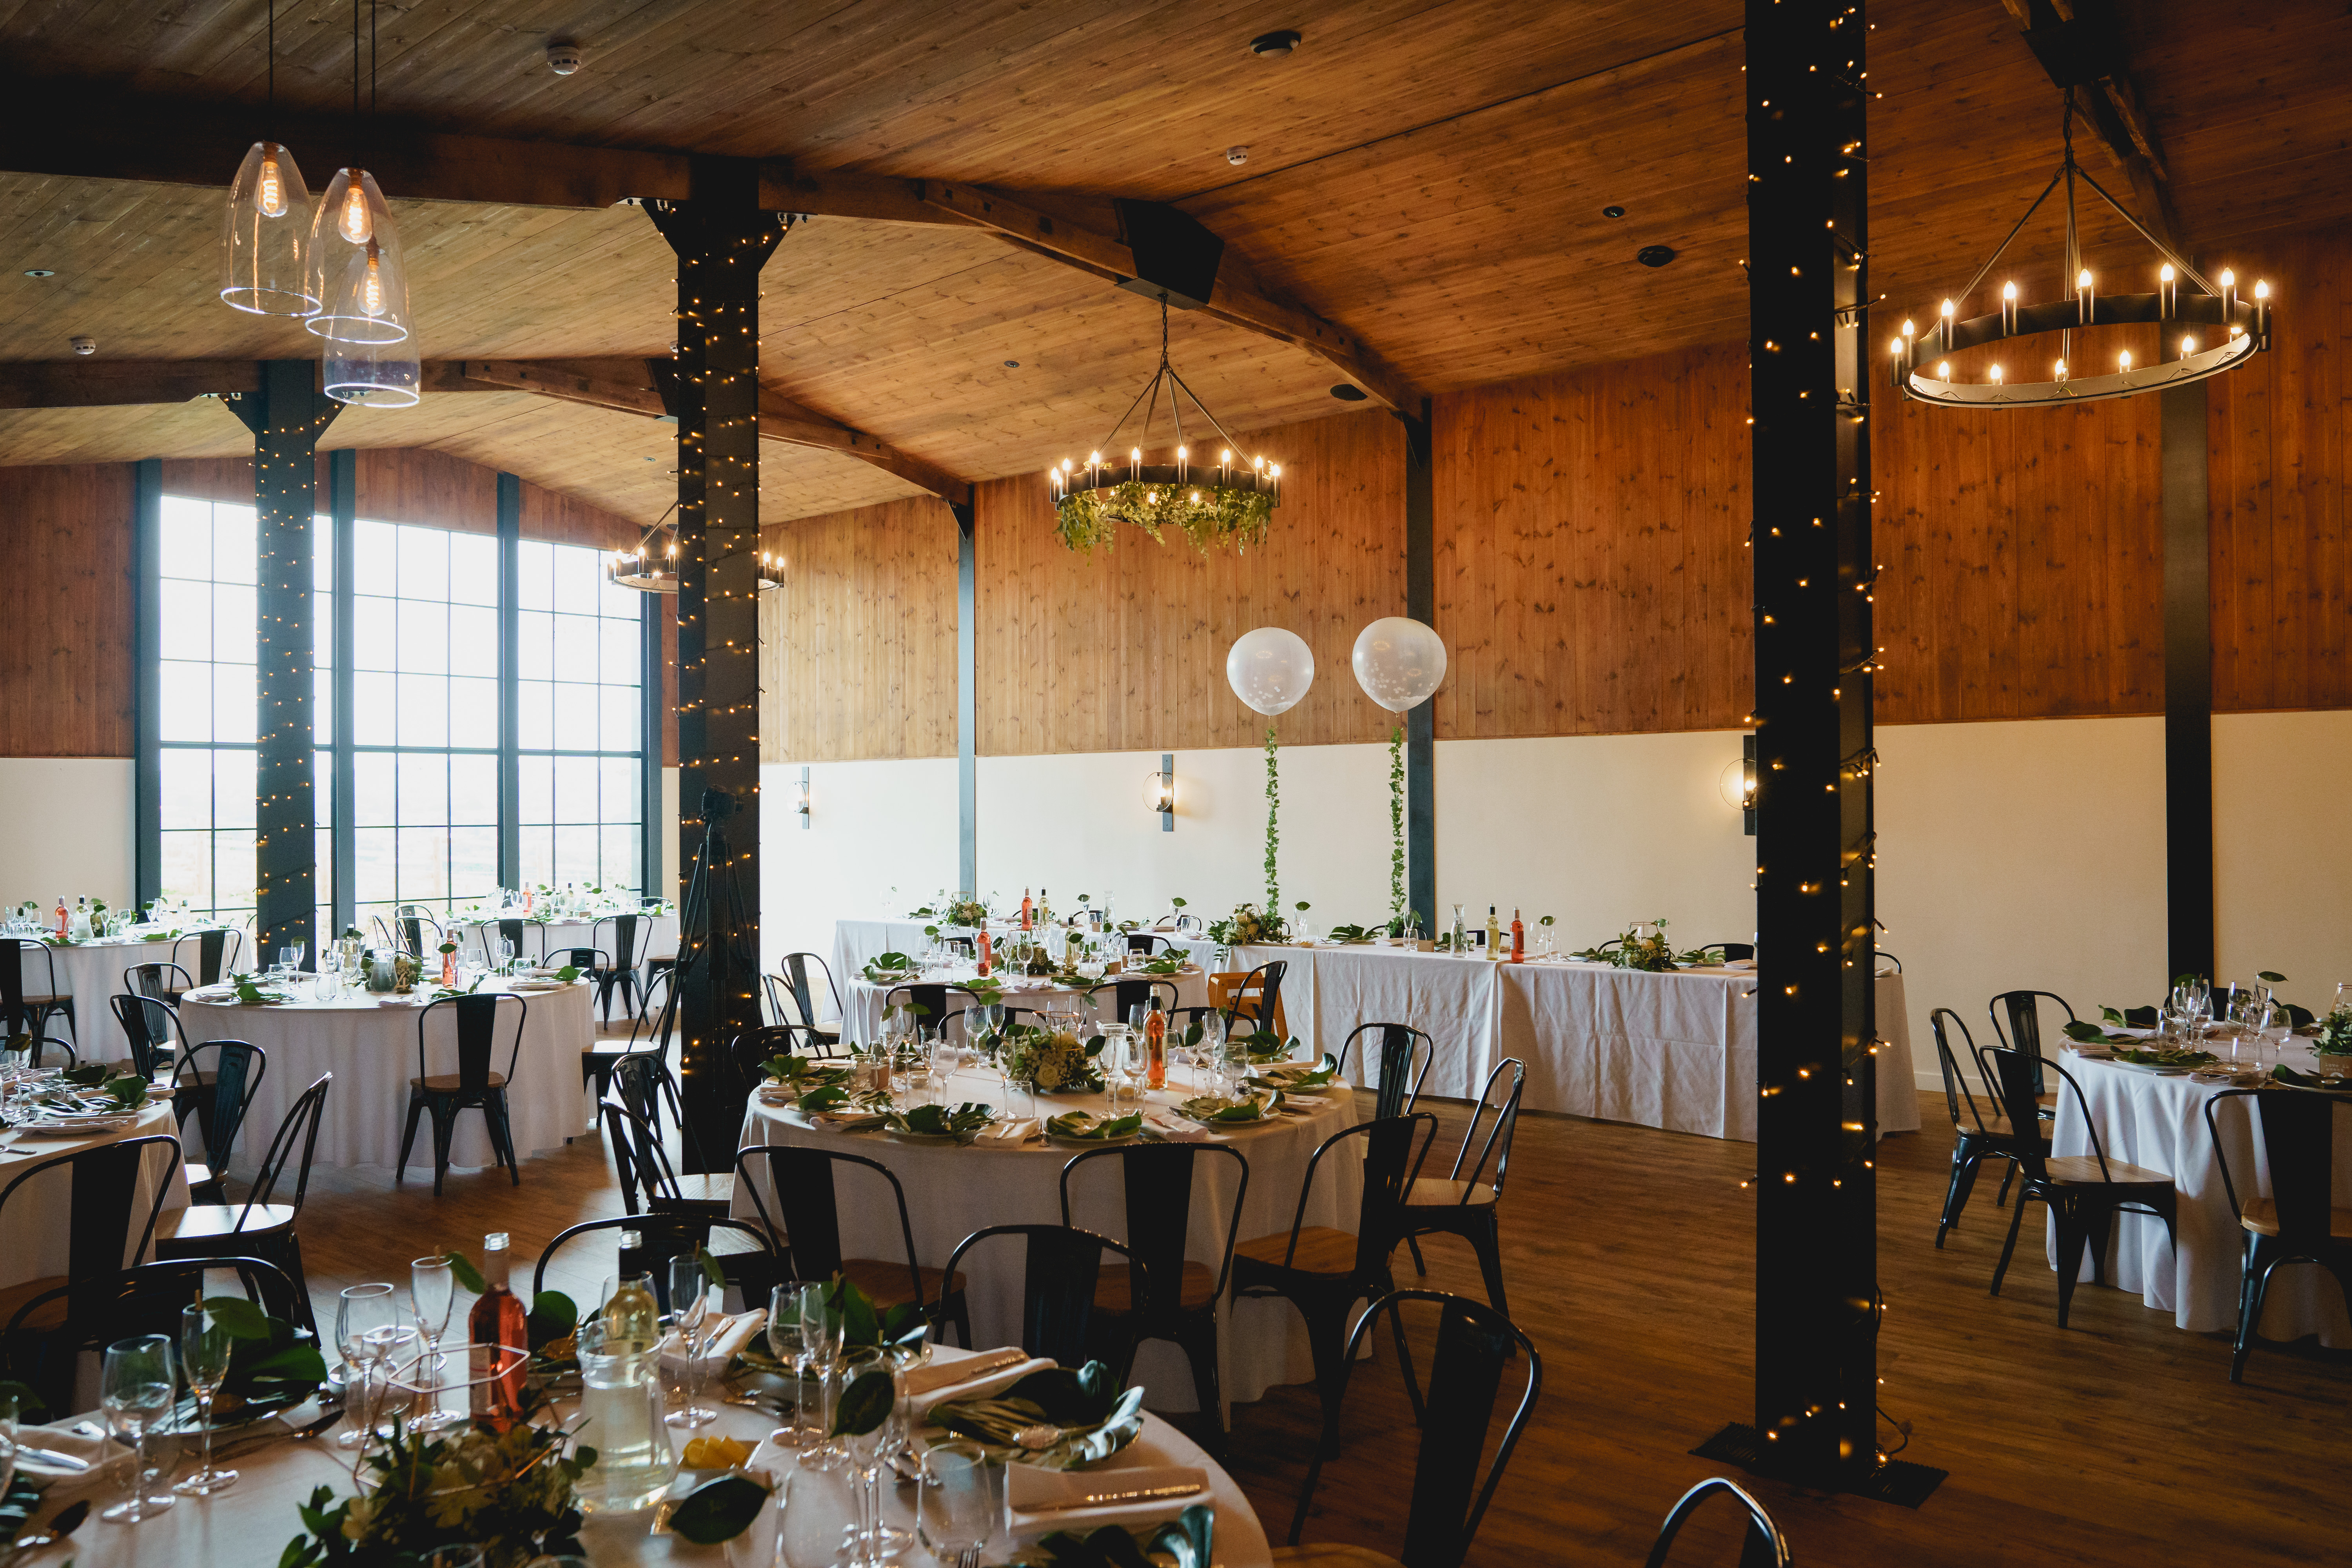 The Cider Barn dressed for a Wedding breakfast